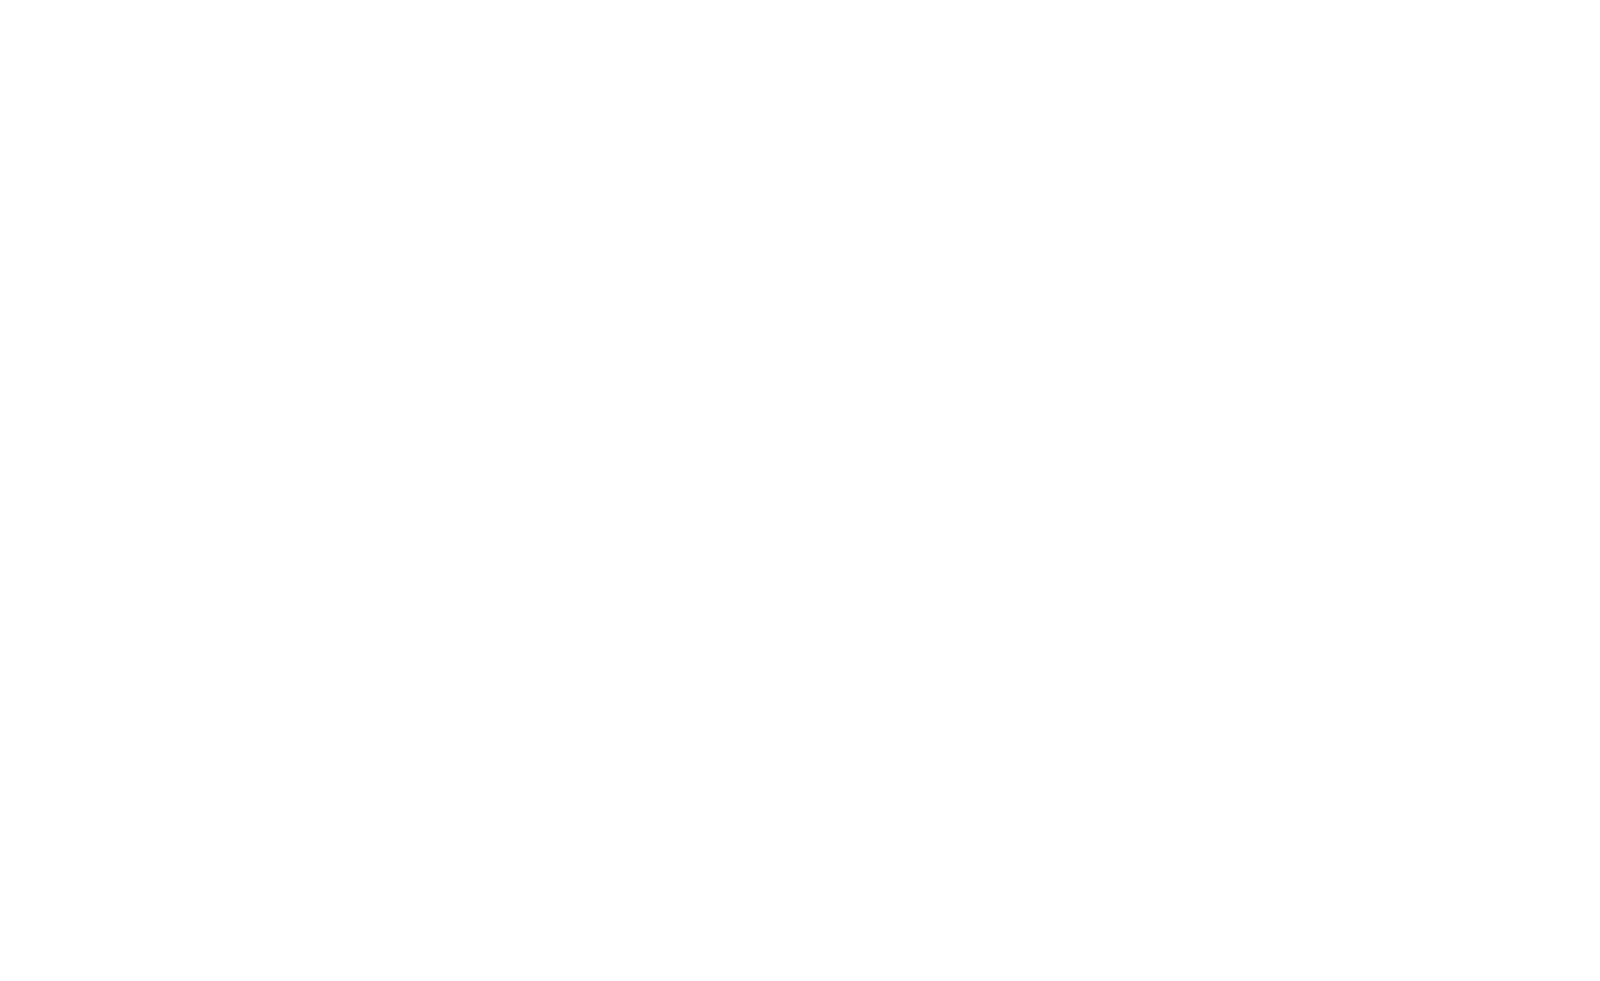 the-howard-de-walden-estate-logo.png